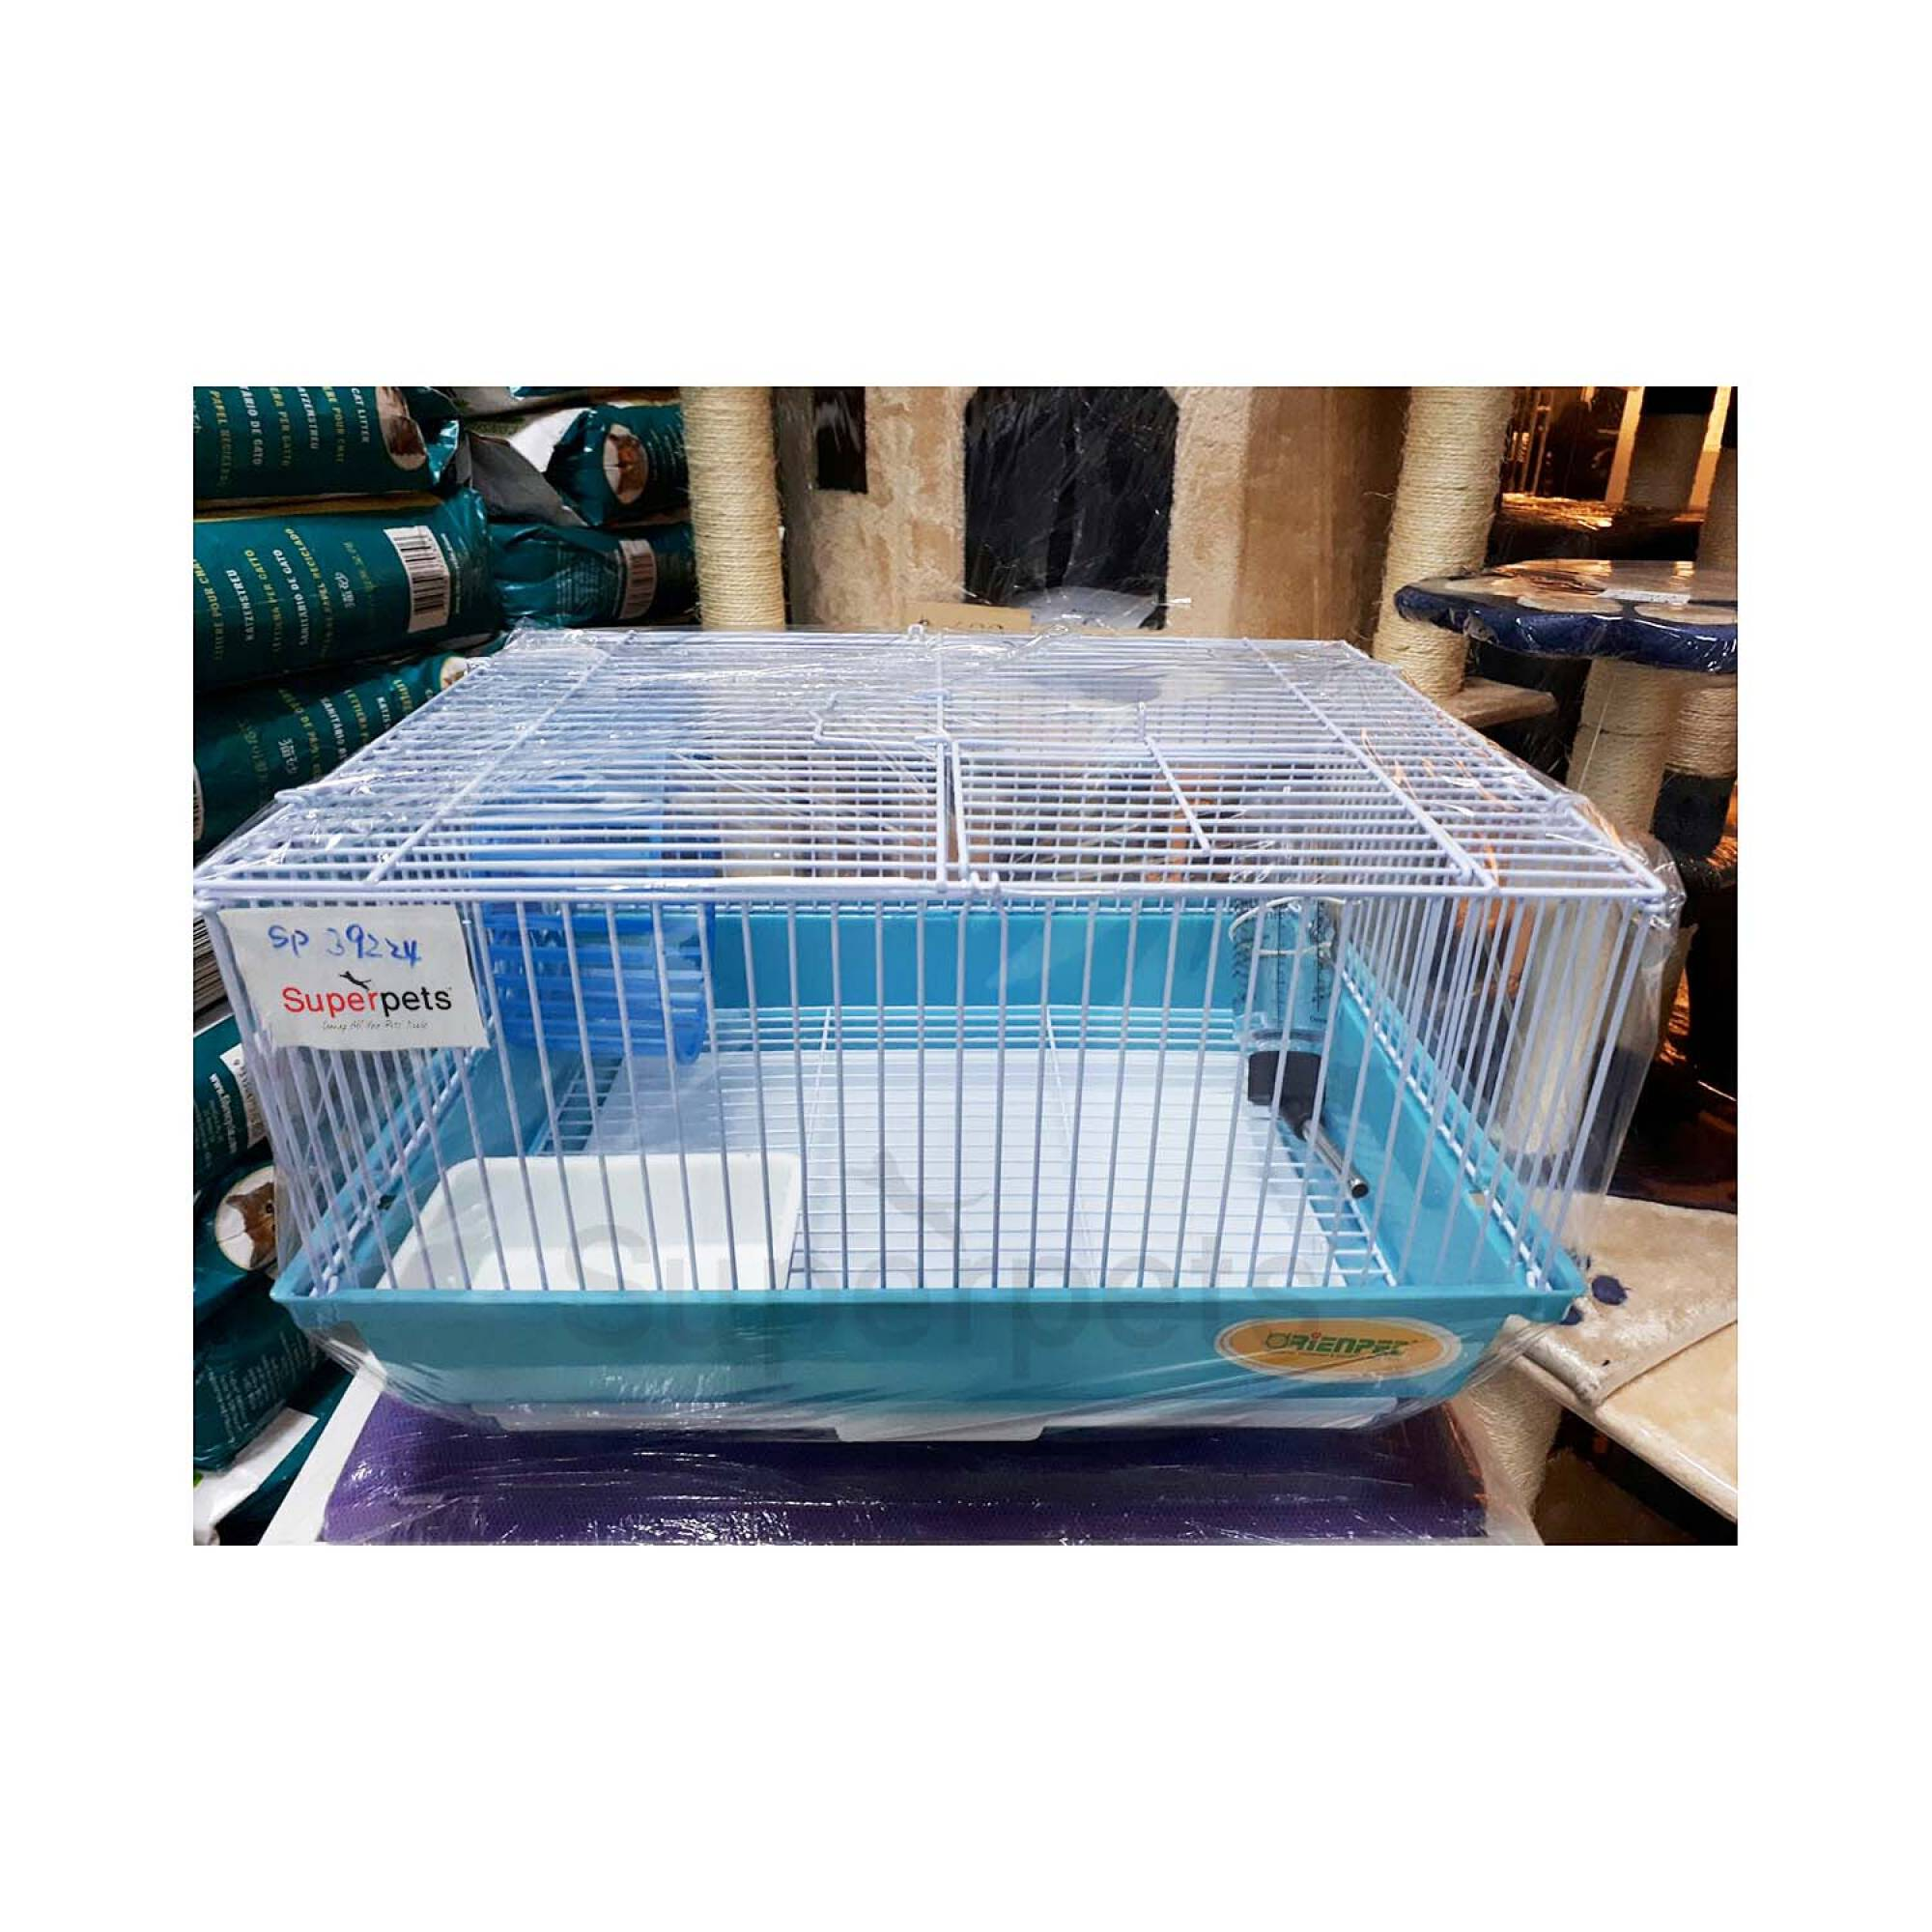 OPSP39224 Hamster Cage - Blue / Green / Yellow - Blue